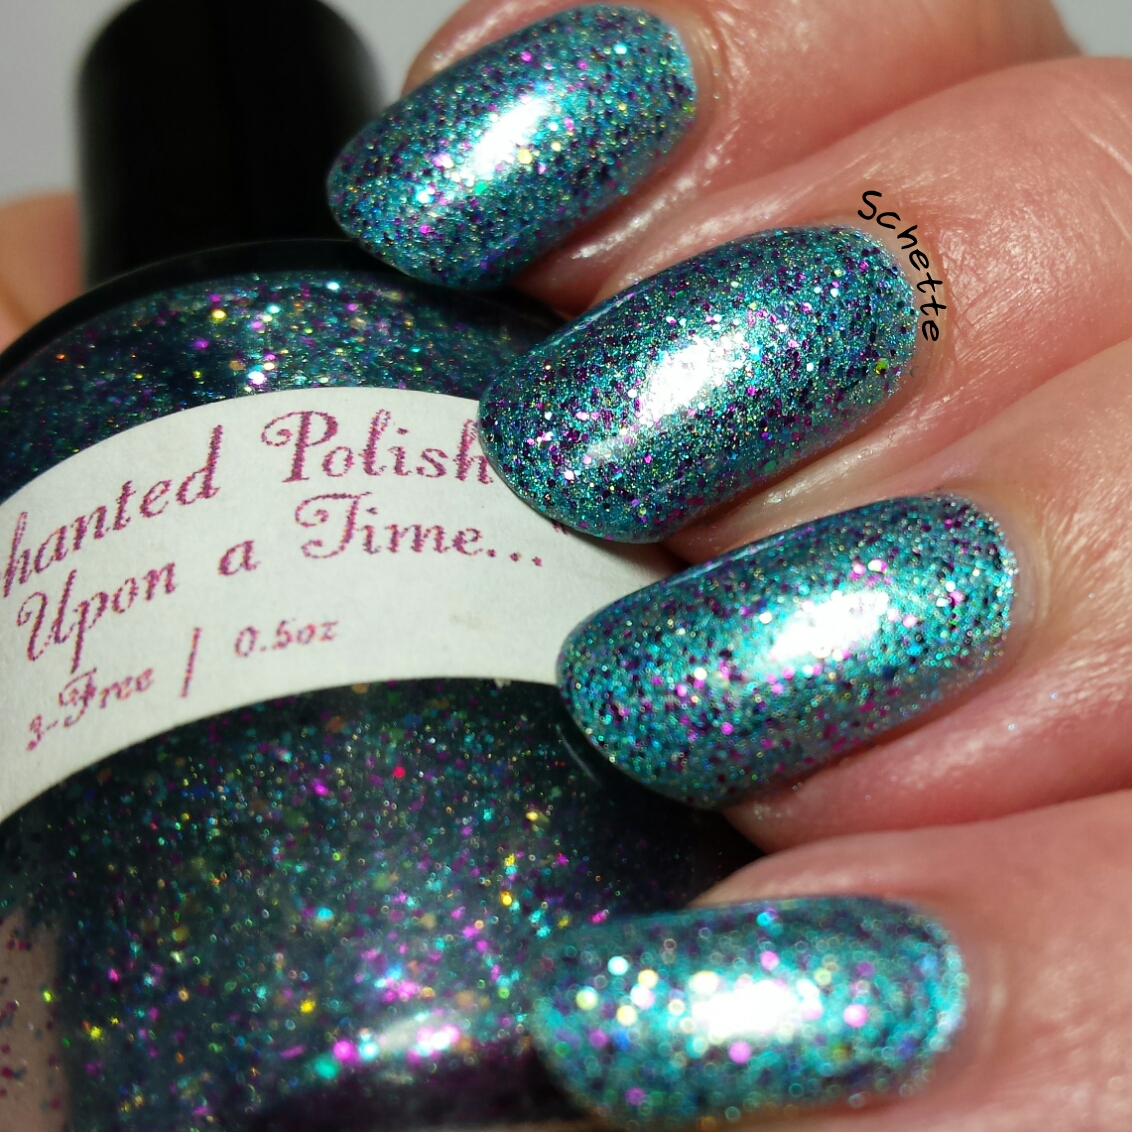 Enchanted Polish : Once upon a time